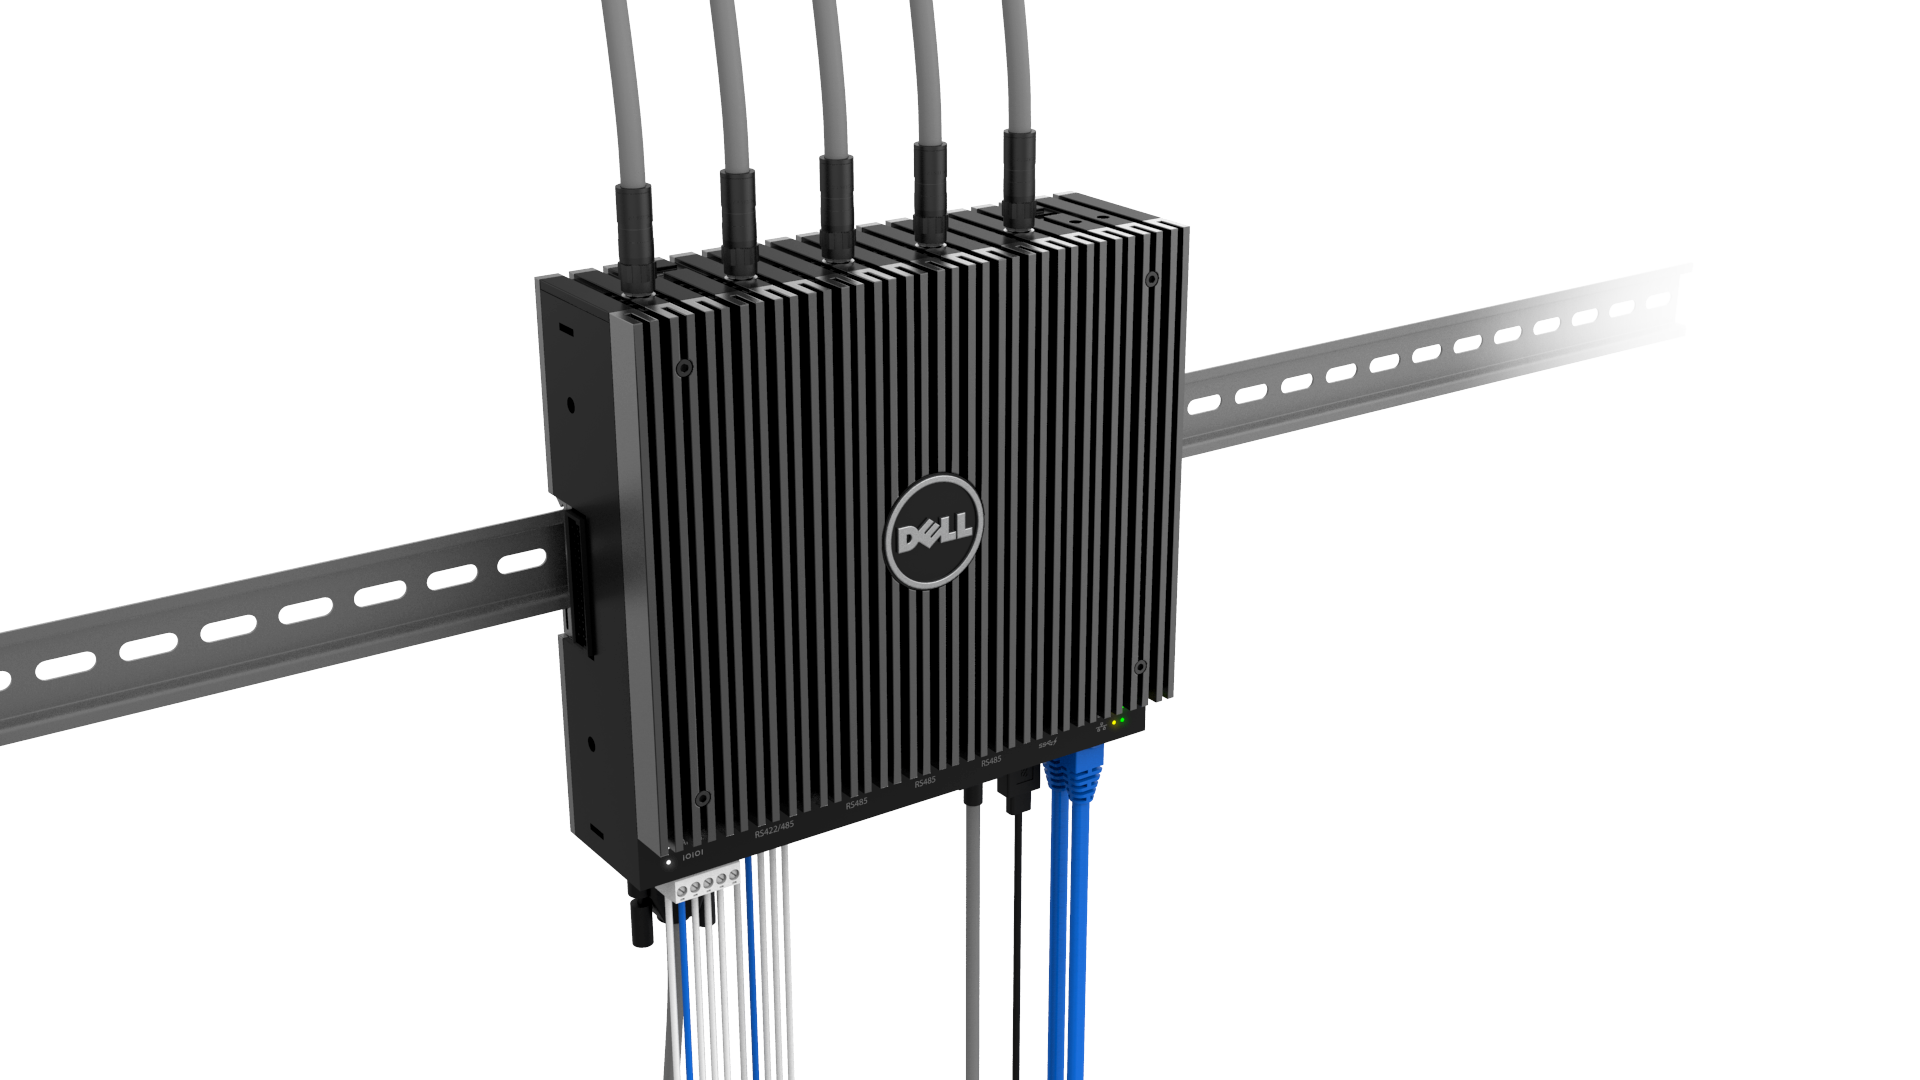 Setting Standards - Defining the award winning design language of an entirely new product category for Dell launching them into the Internet of Things (IoT) product market.